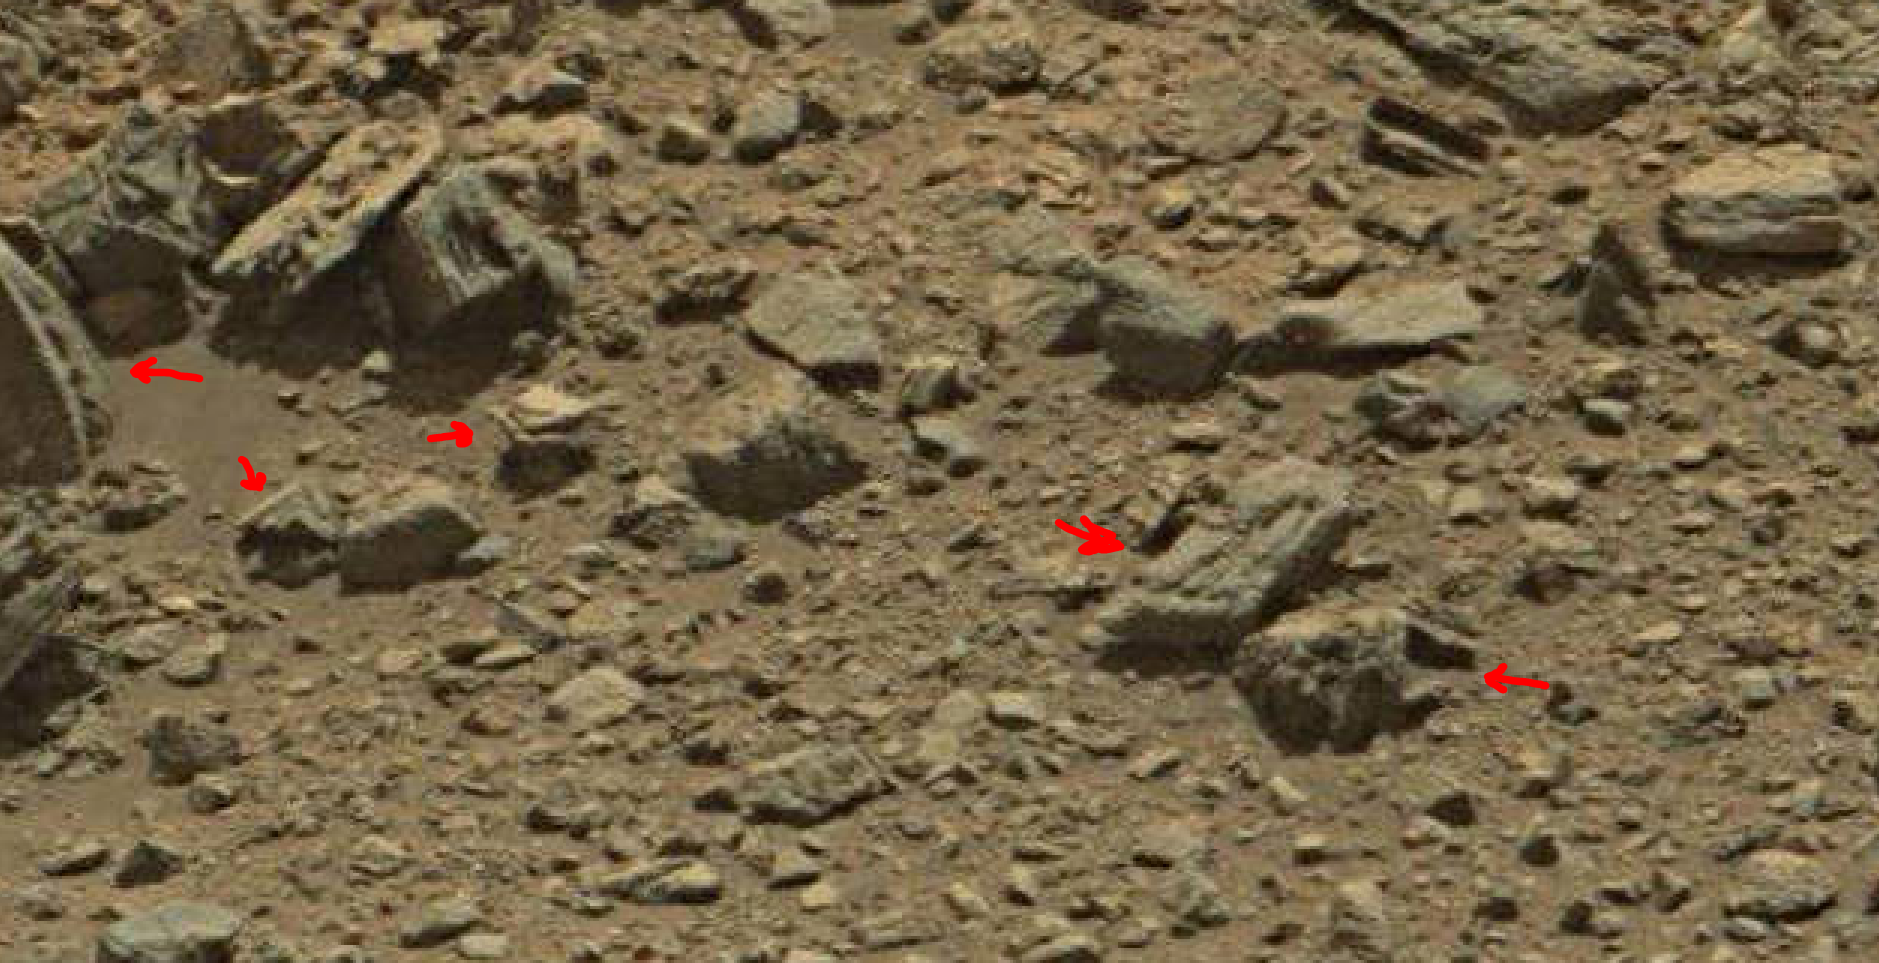 mars sol 1378 anomaly-artifacts 8 was life on mars